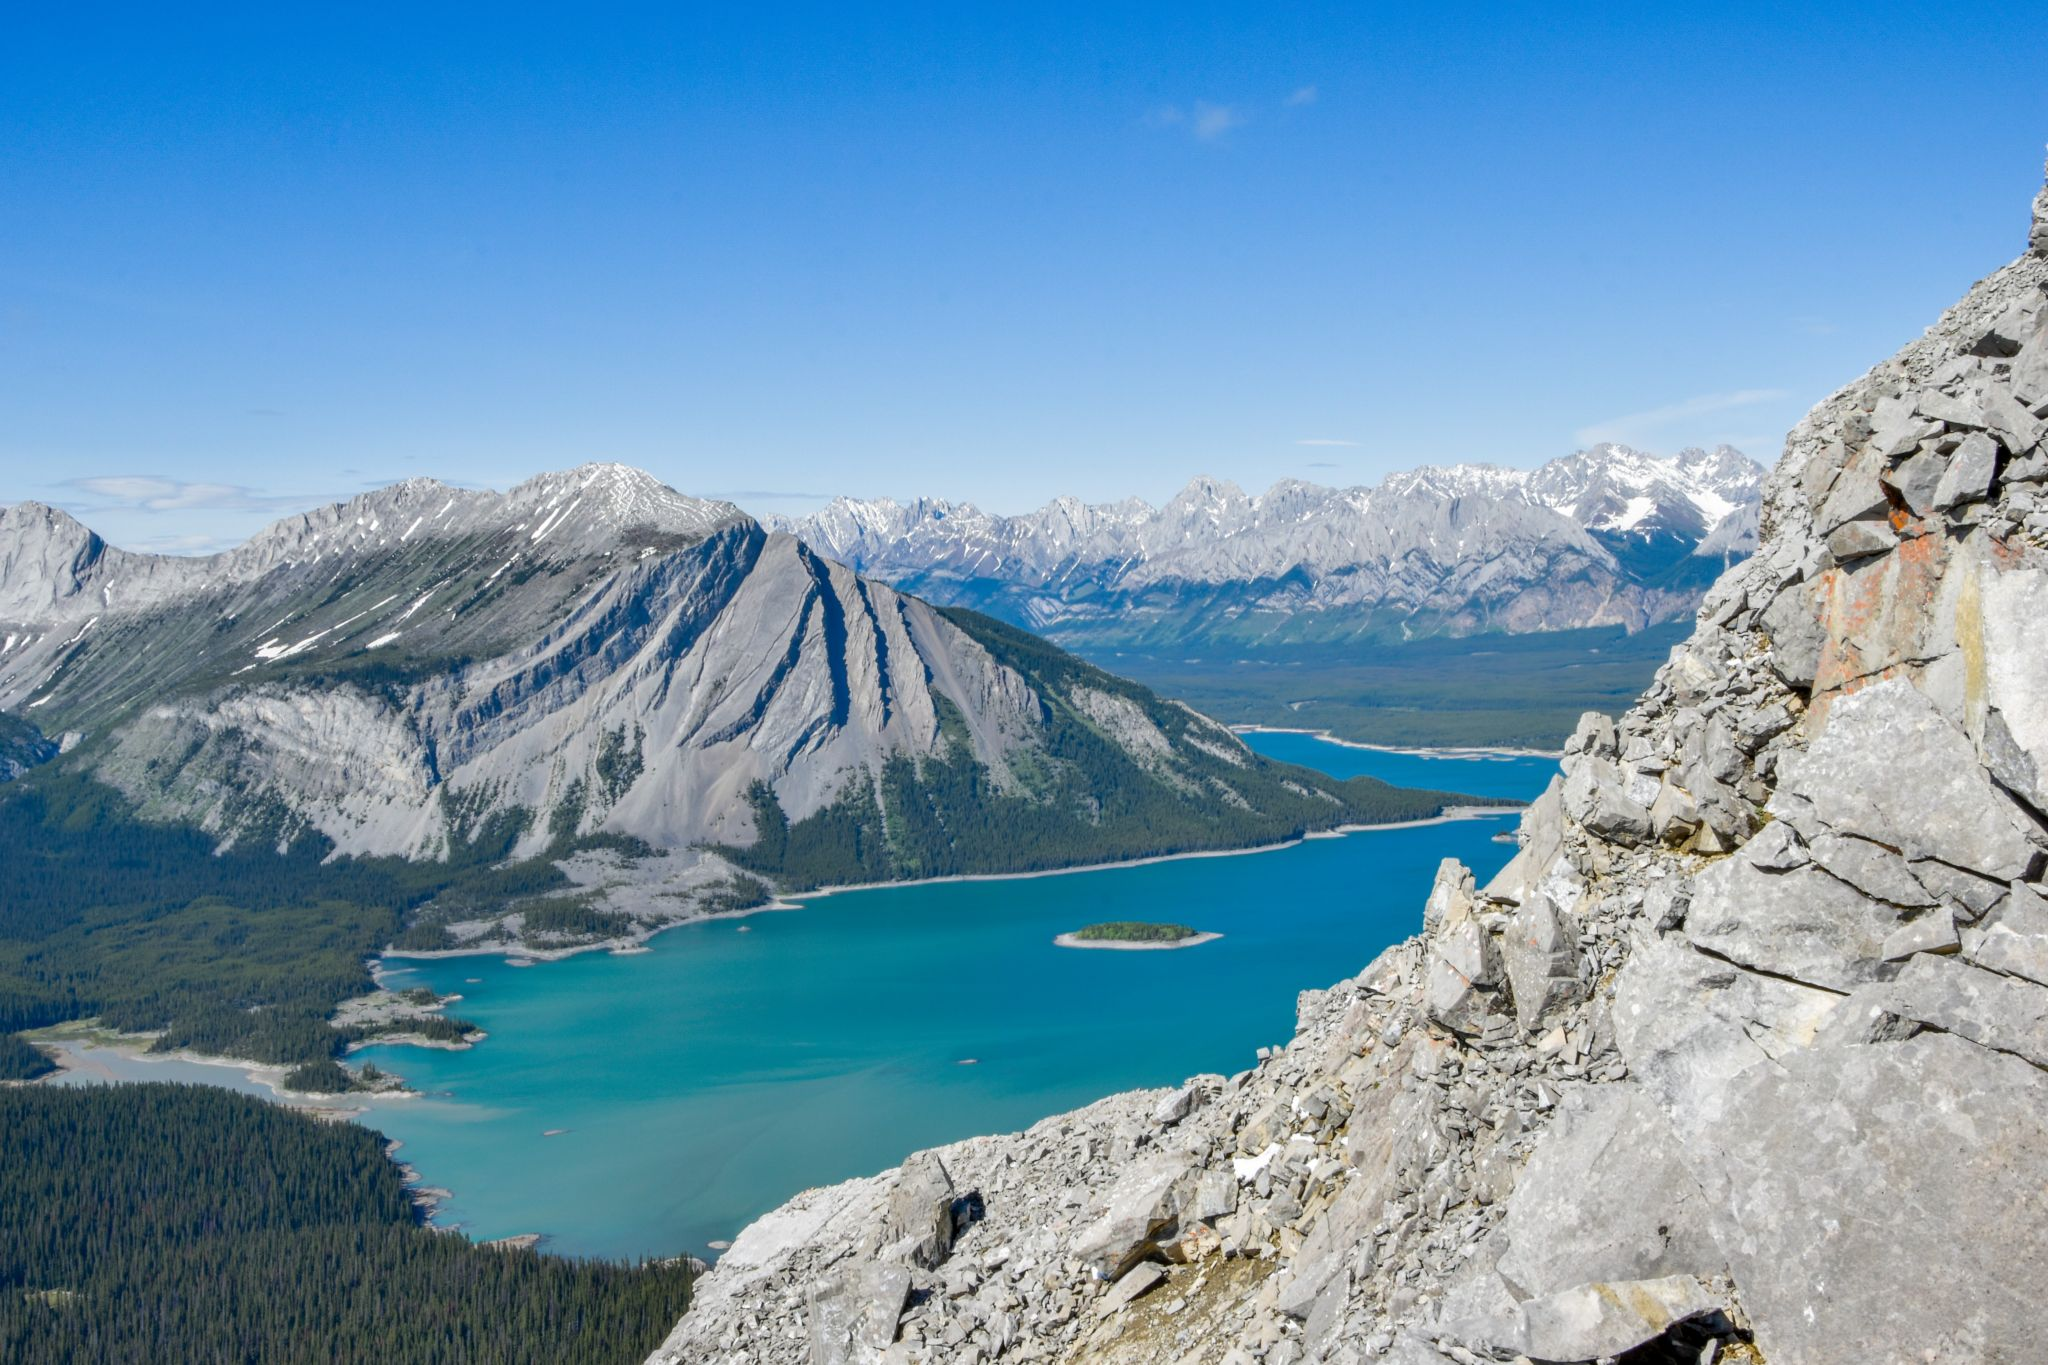 View of Upper Kananaskis Lake from Mount Sarrail, Canada